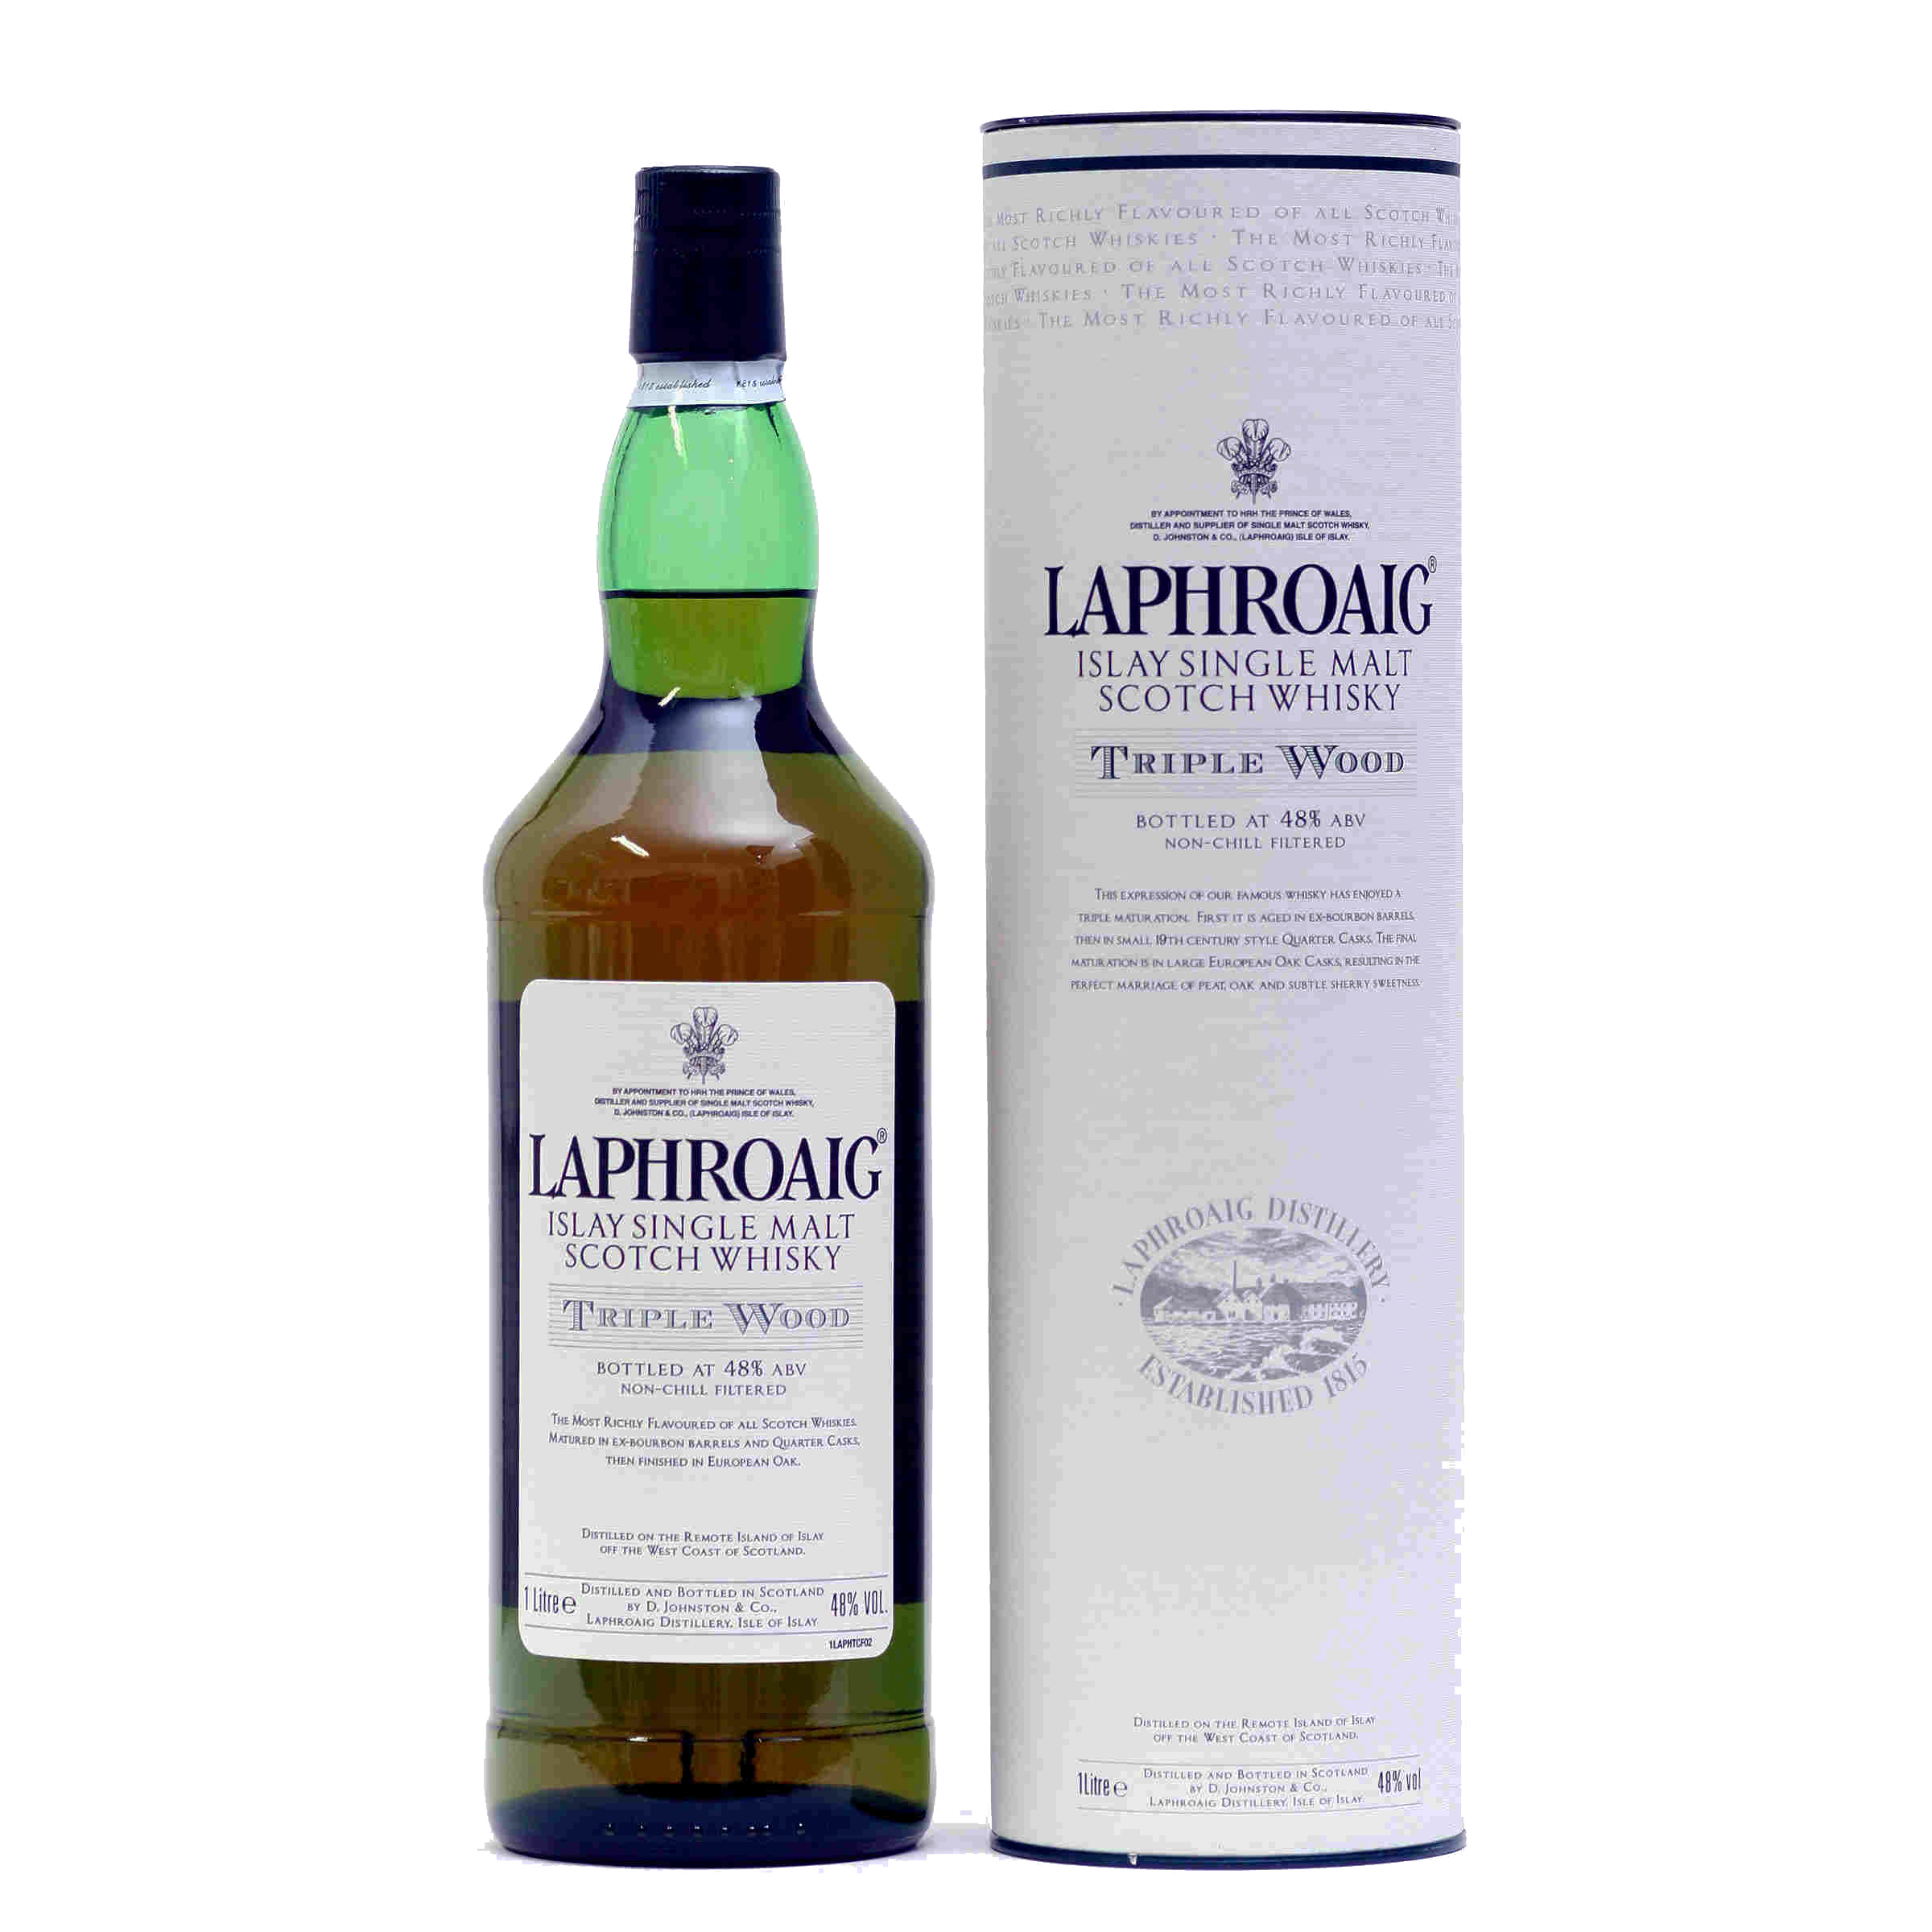 Laphroaig Triple Wood Malt Scotch Whisky | WhiskeyTimes.com.jpg